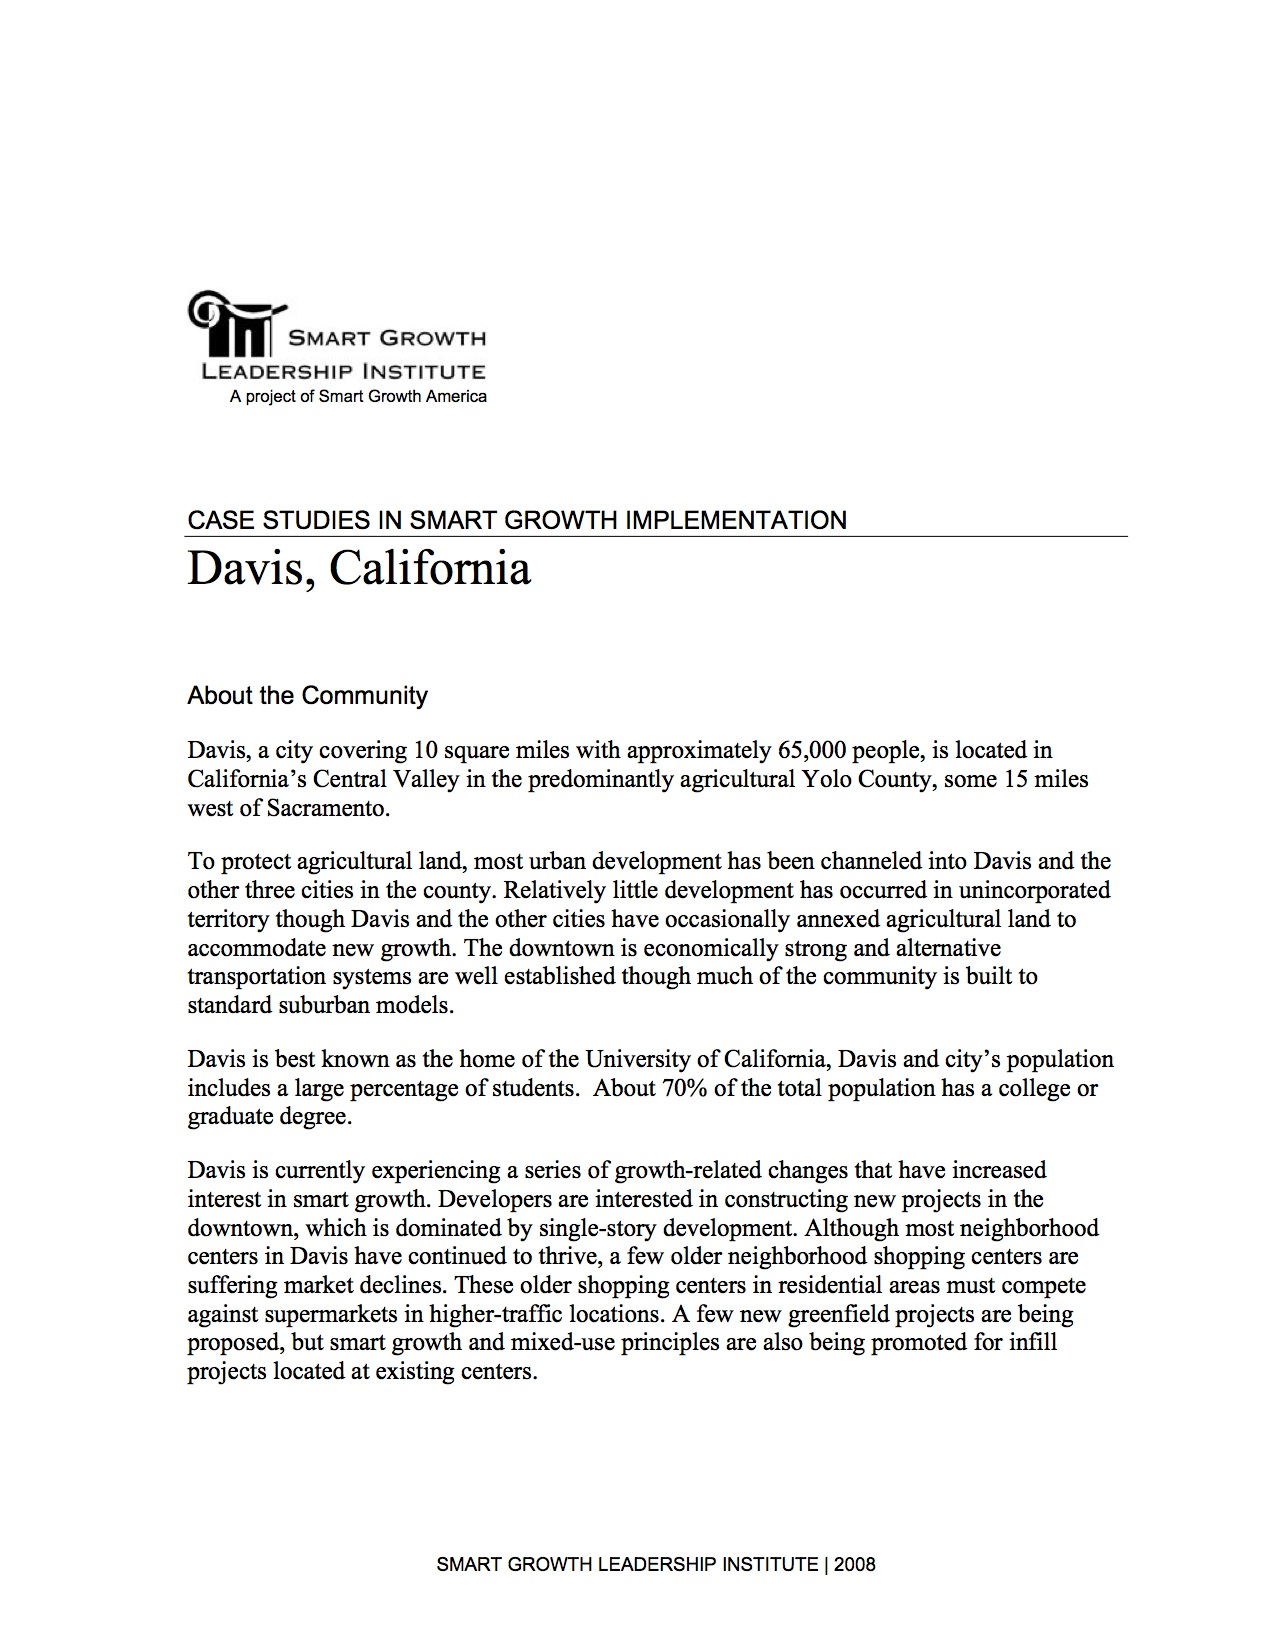 Case Studies in Smart Growth Implementation: Davis, California